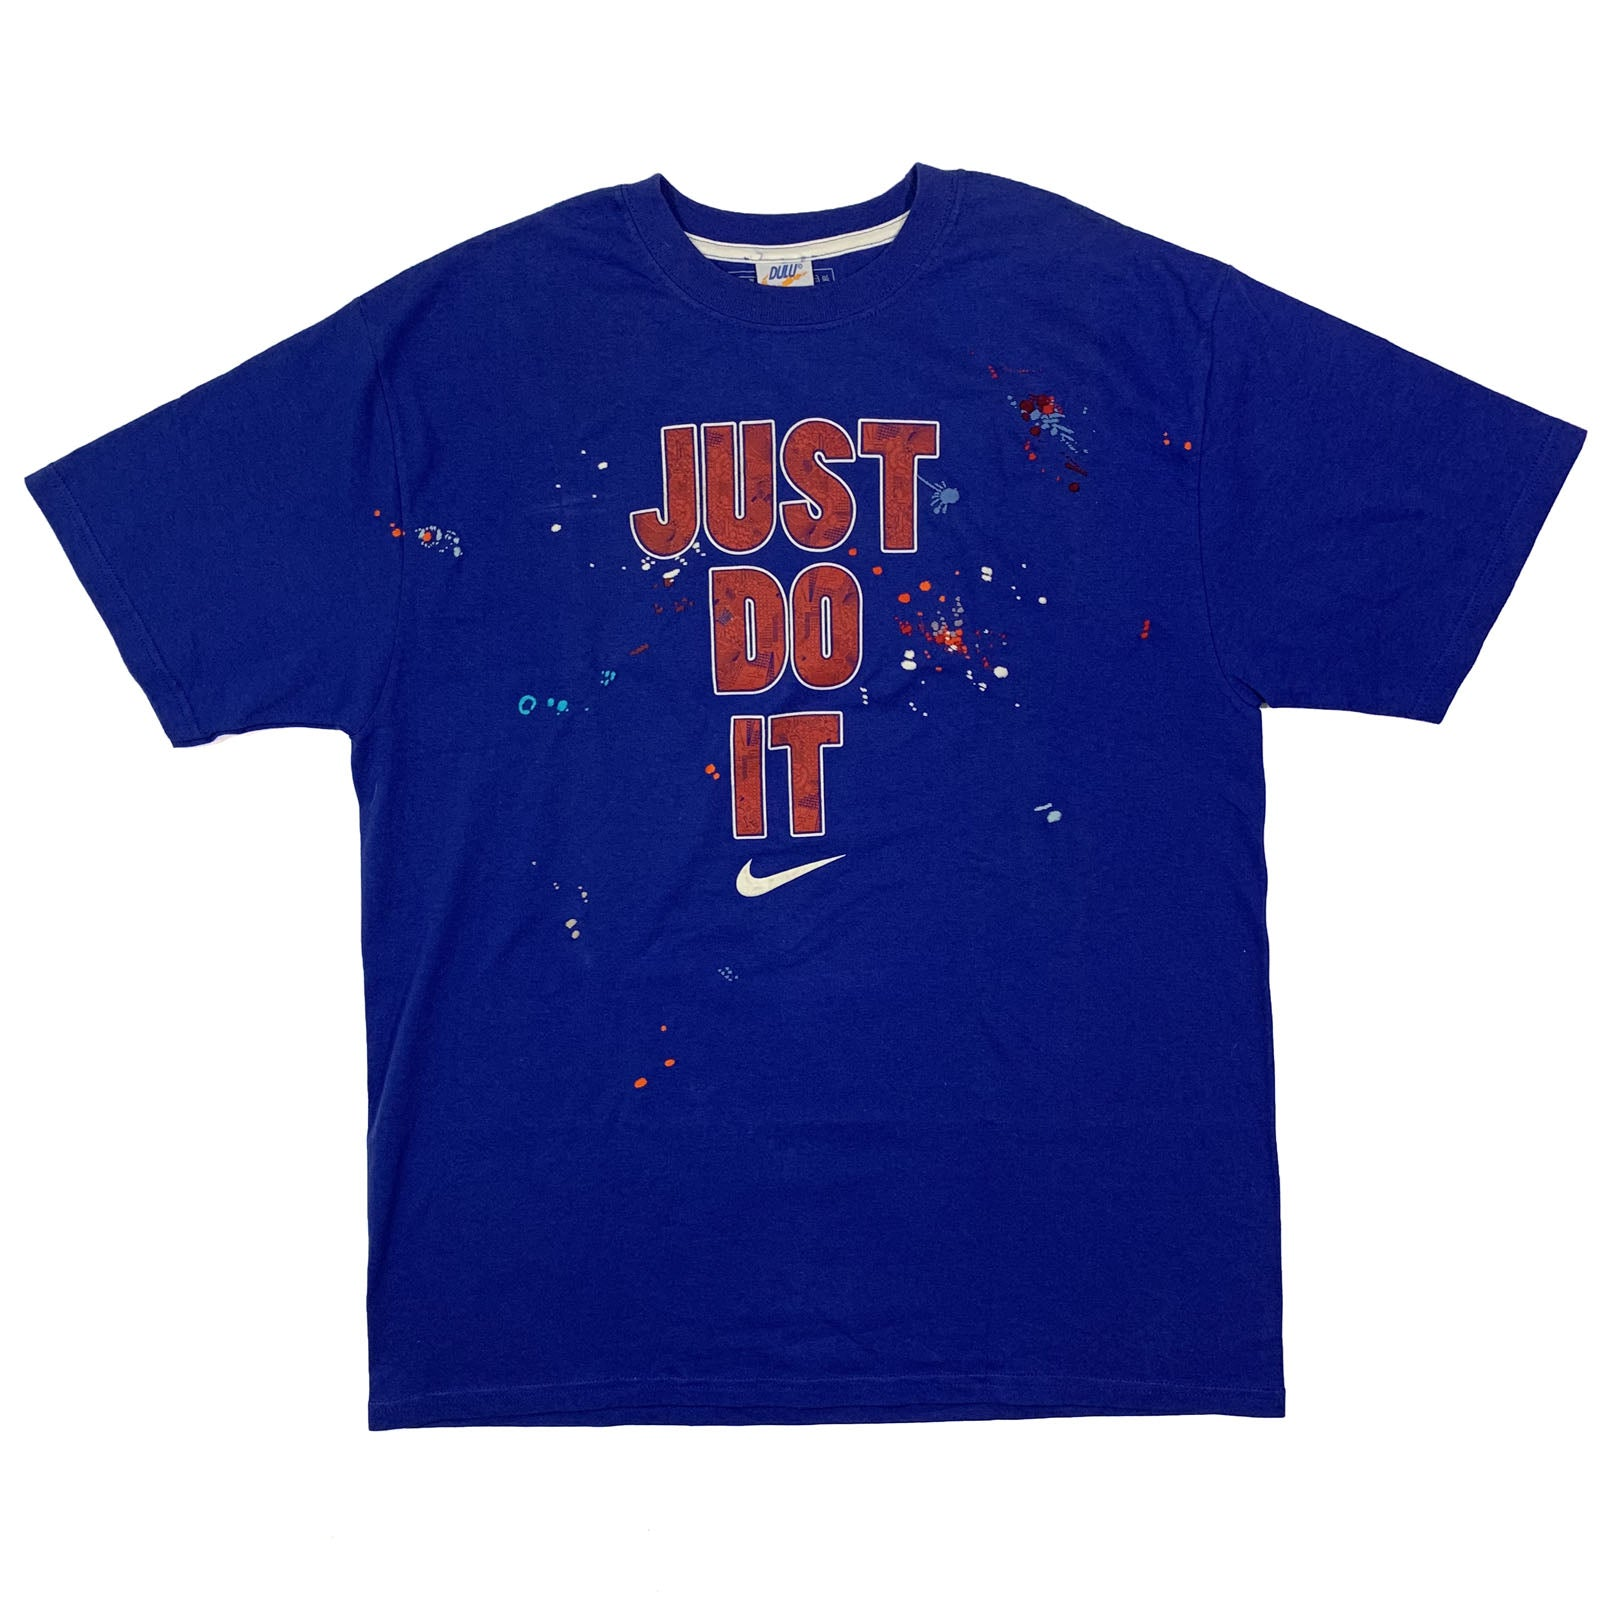 "BANDULU "" JUSS DO IT "" VINTAGE NIKE TEE XL"